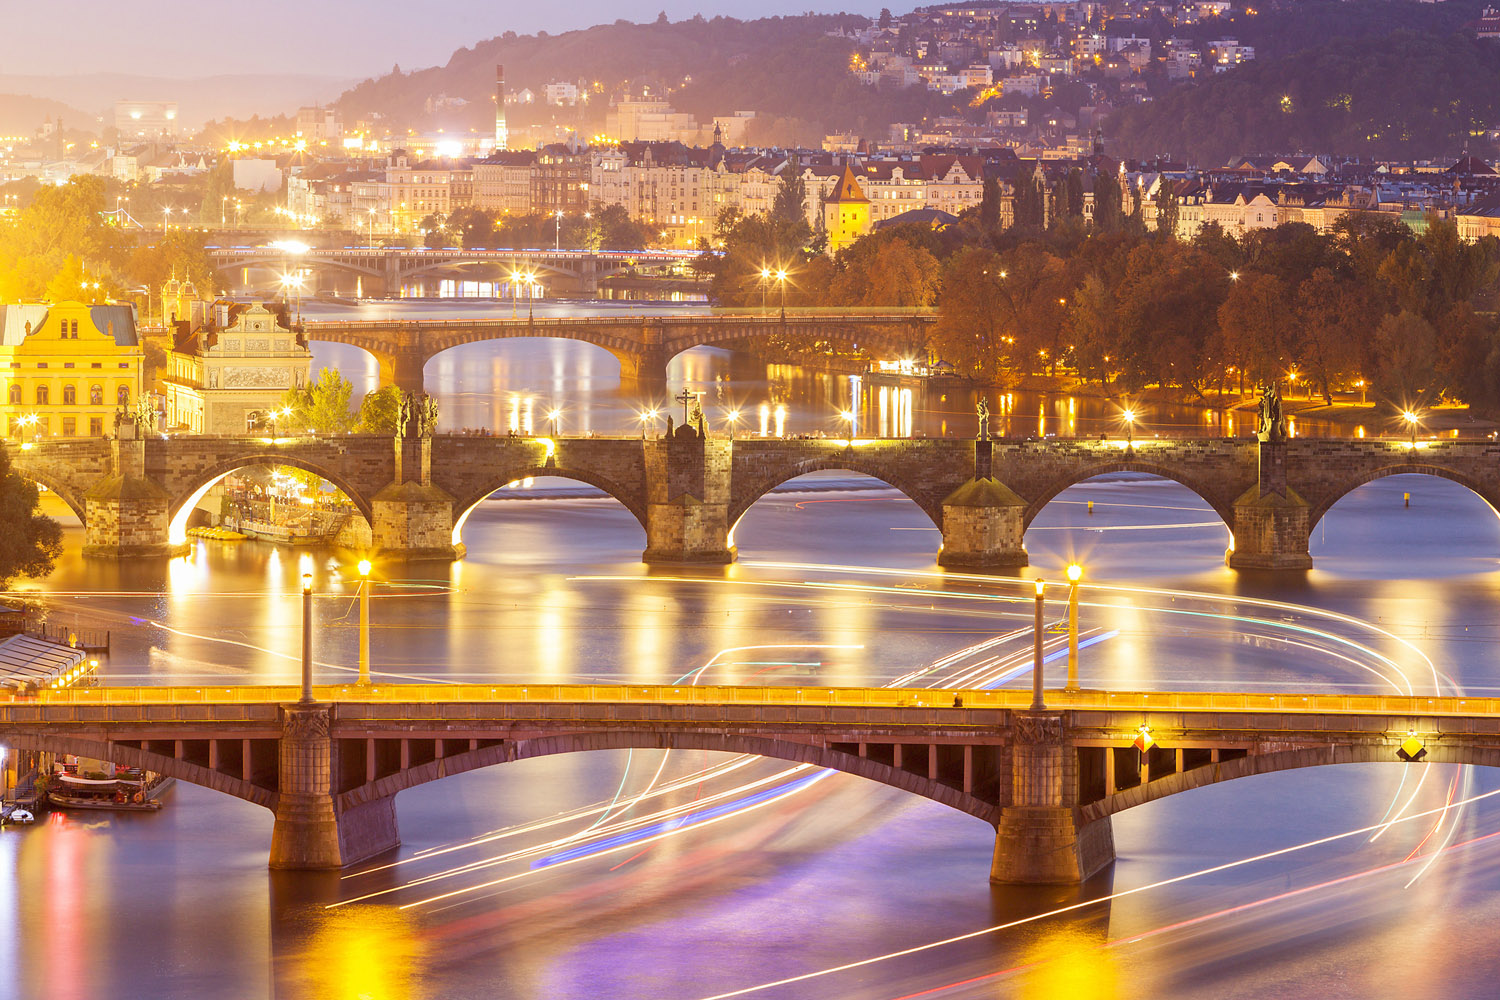 Prague is one of the world's smartest cities, says a new global index